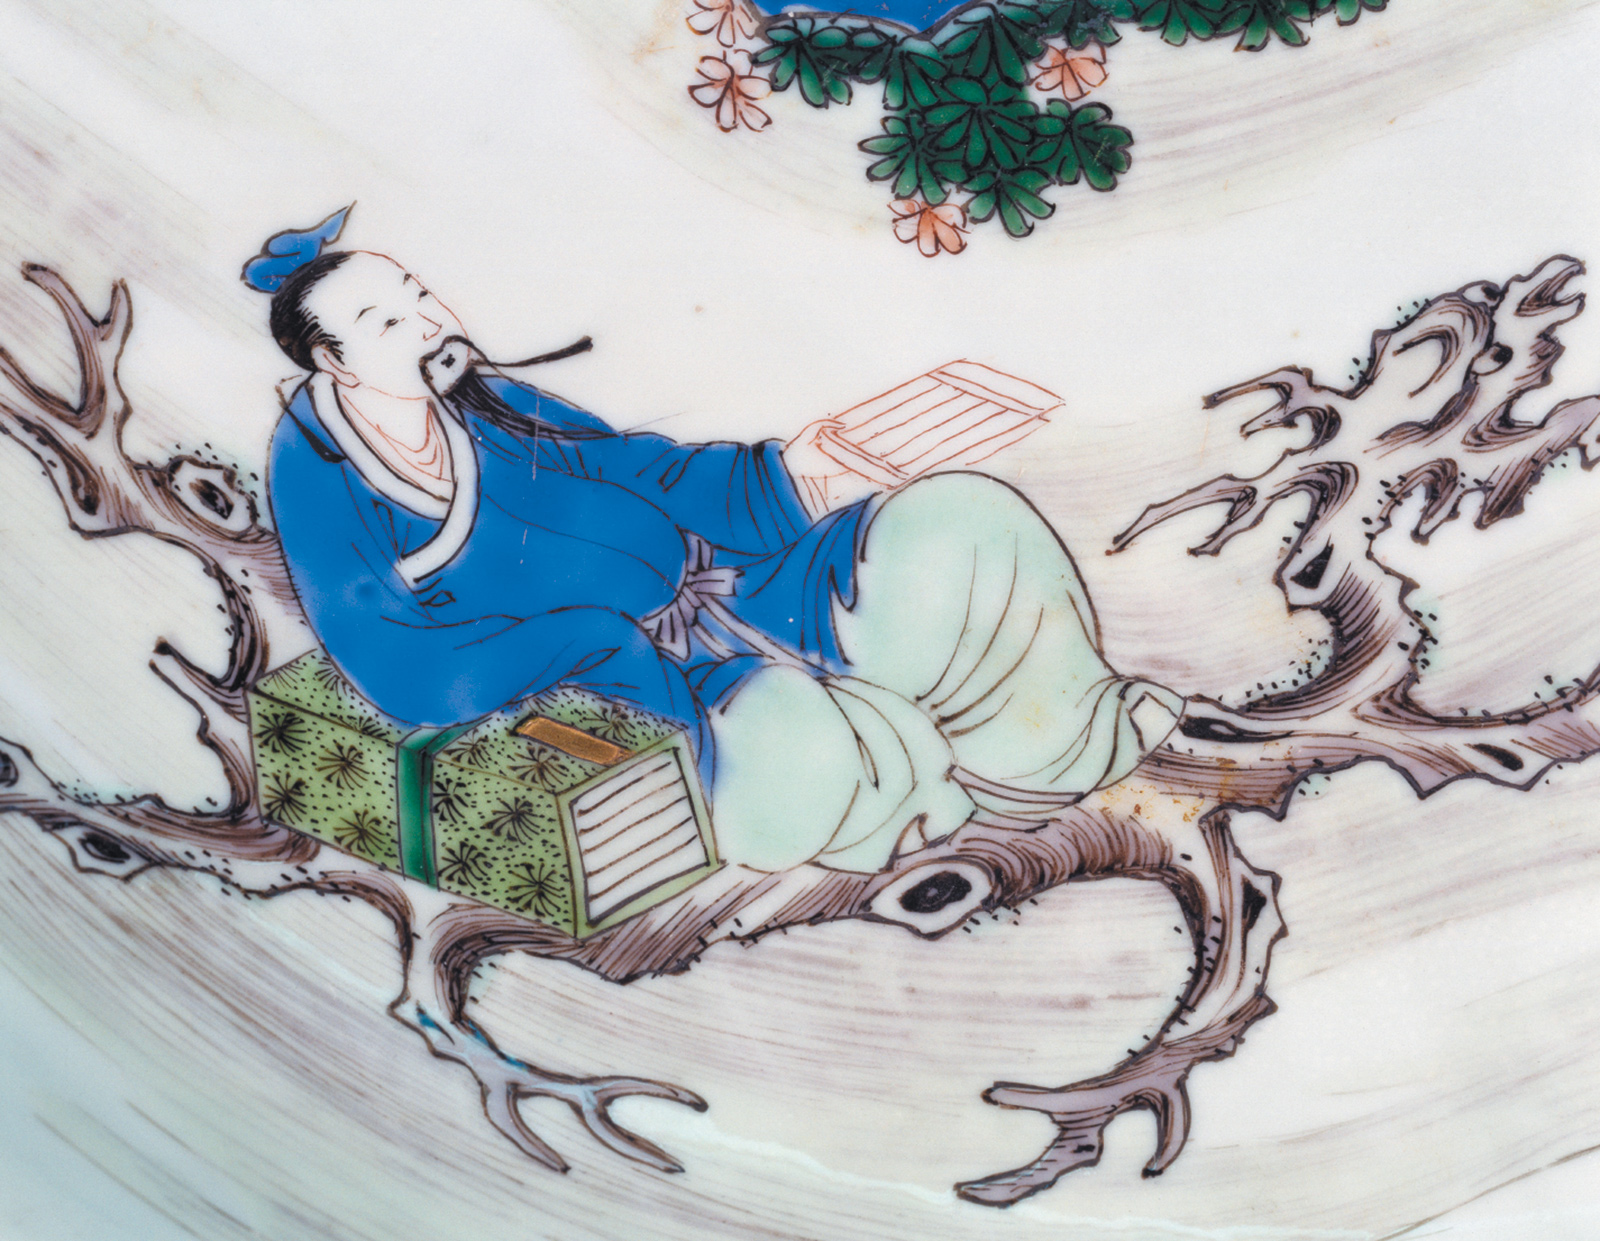 The poet Li Po; portrait from a ceramic plate, Qing Dynasty, circa 1700